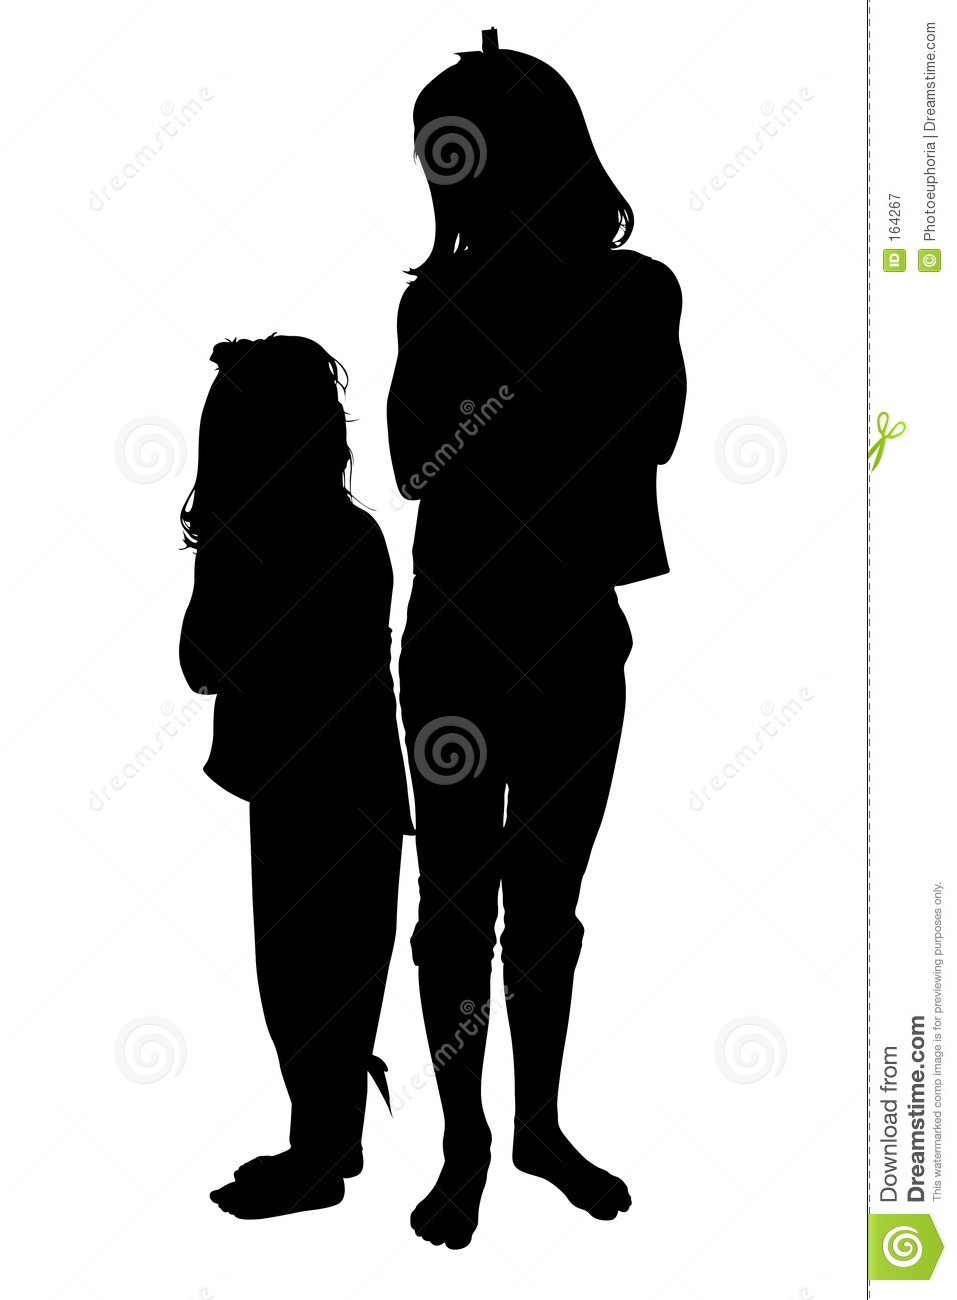 Sisters Silhouette Clipart - Clipart Suggest